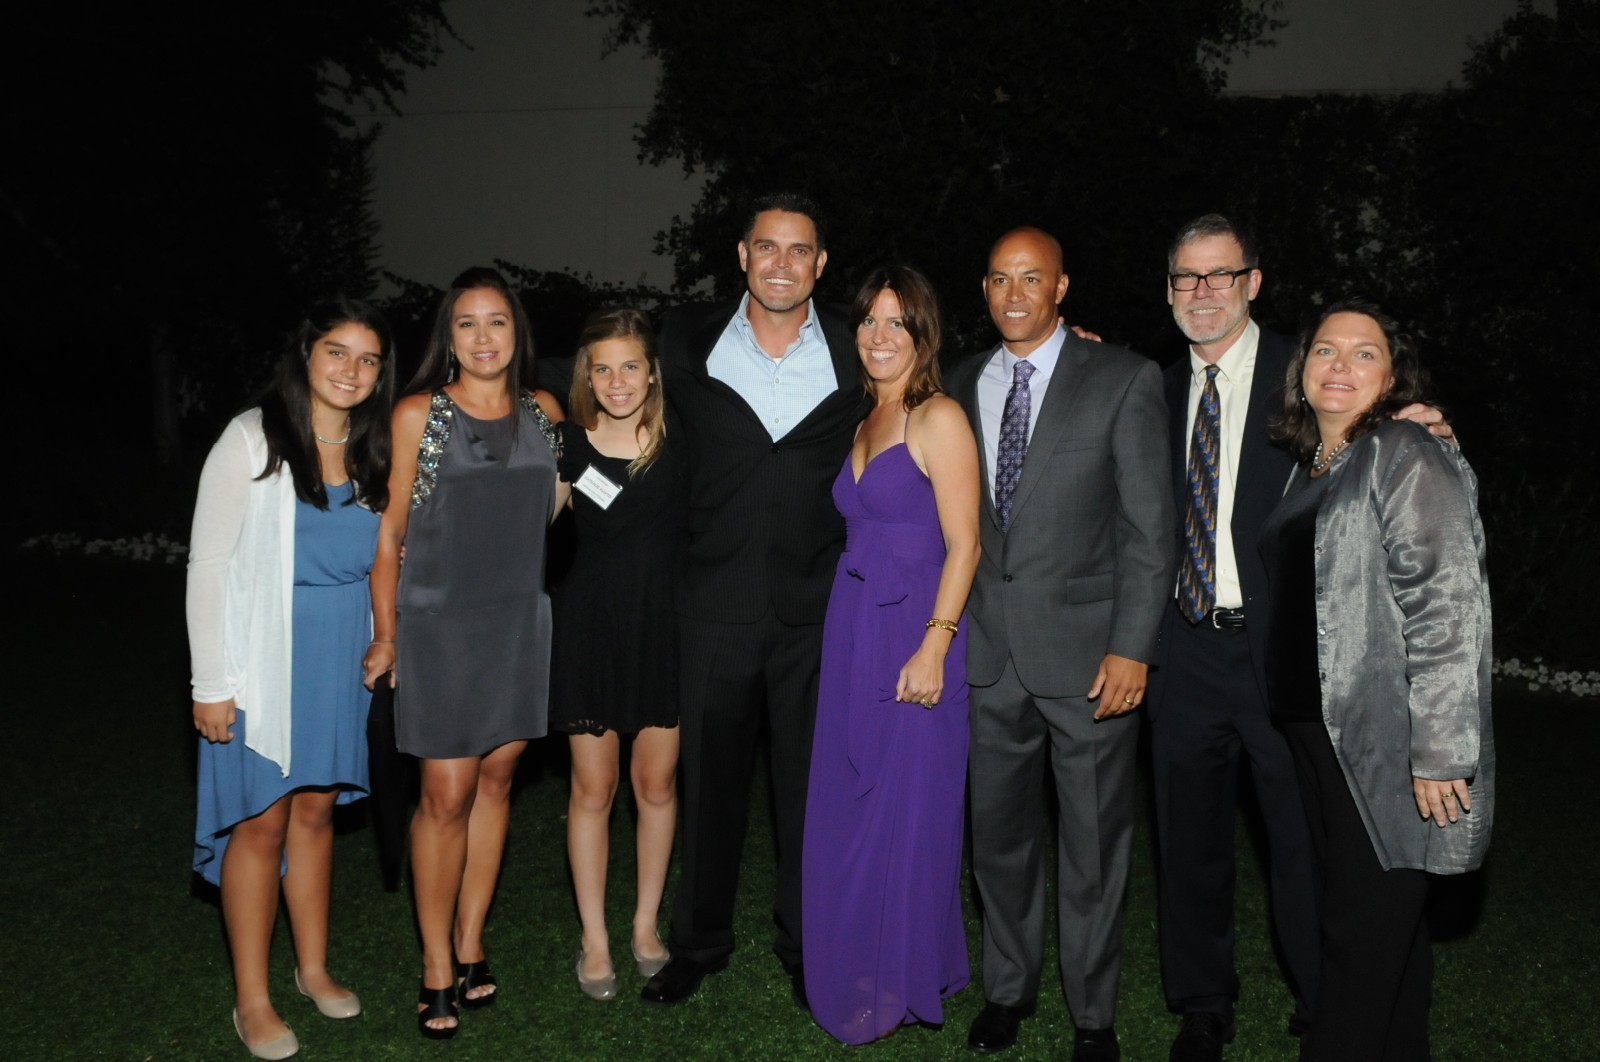 2013 Honorees Marc and Nicole Weiss. Left to right - Madison Weiss, Nicole Weiss, Nathalie Martin, Marc Weiss, Amy Martin, Chris Martin, Stan Nelson, Carrie Miceli